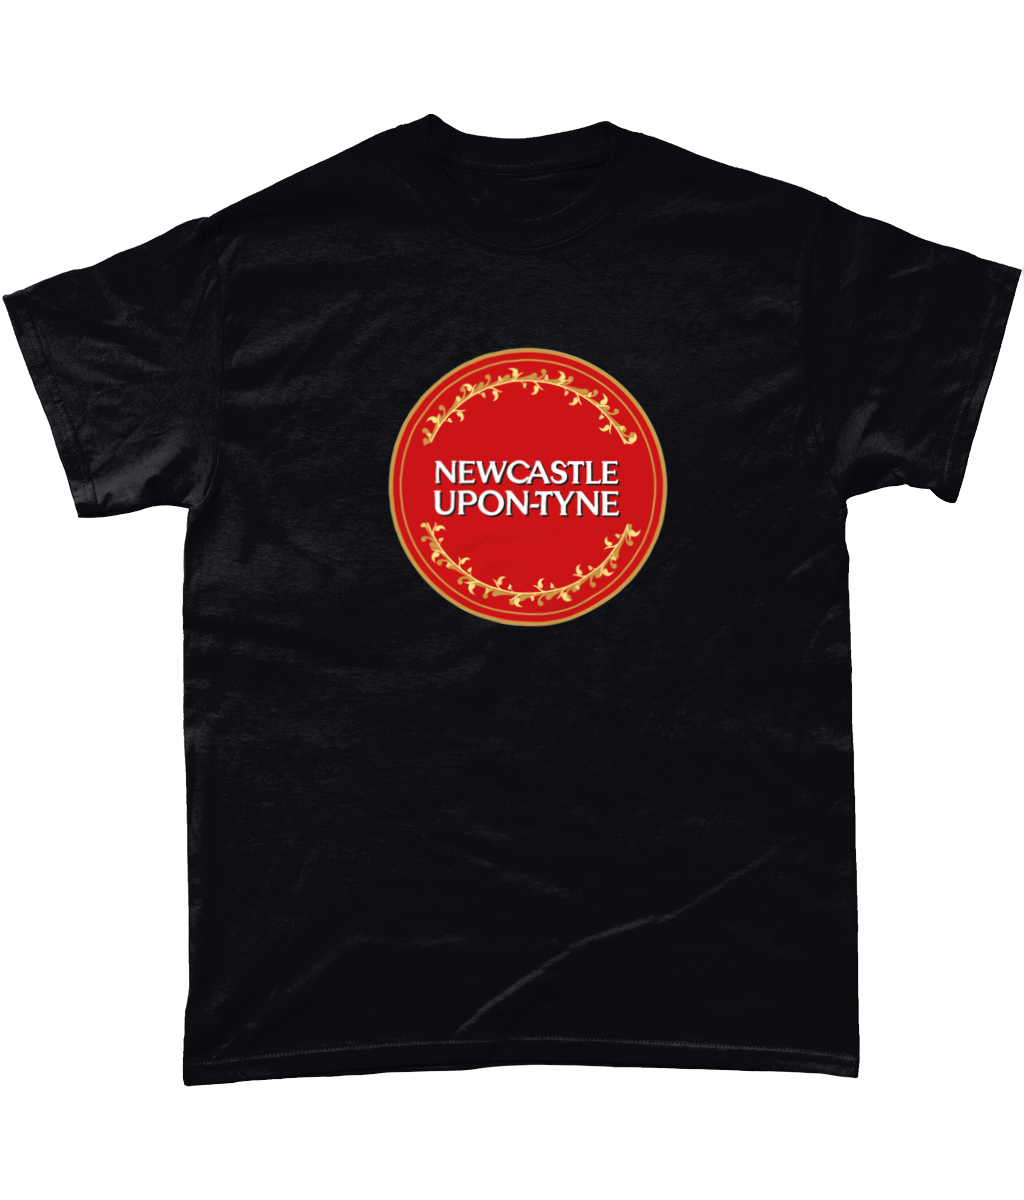 'Newcastella' Geordie Mens T-Shirt